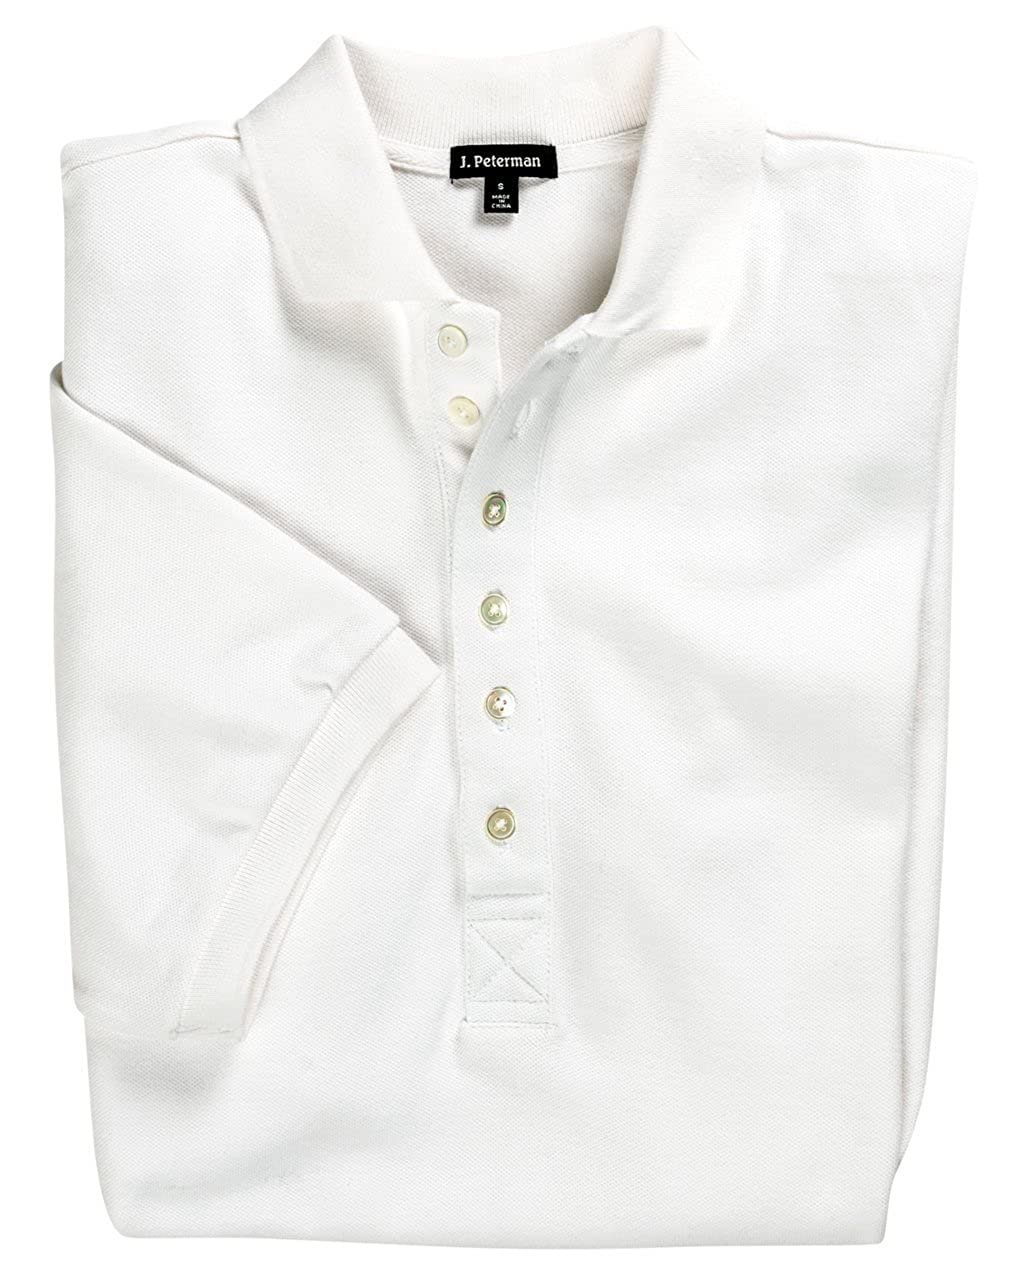 1940s Style Mens Shirts The Original Polo Shirt $55.20 AT vintagedancer.com